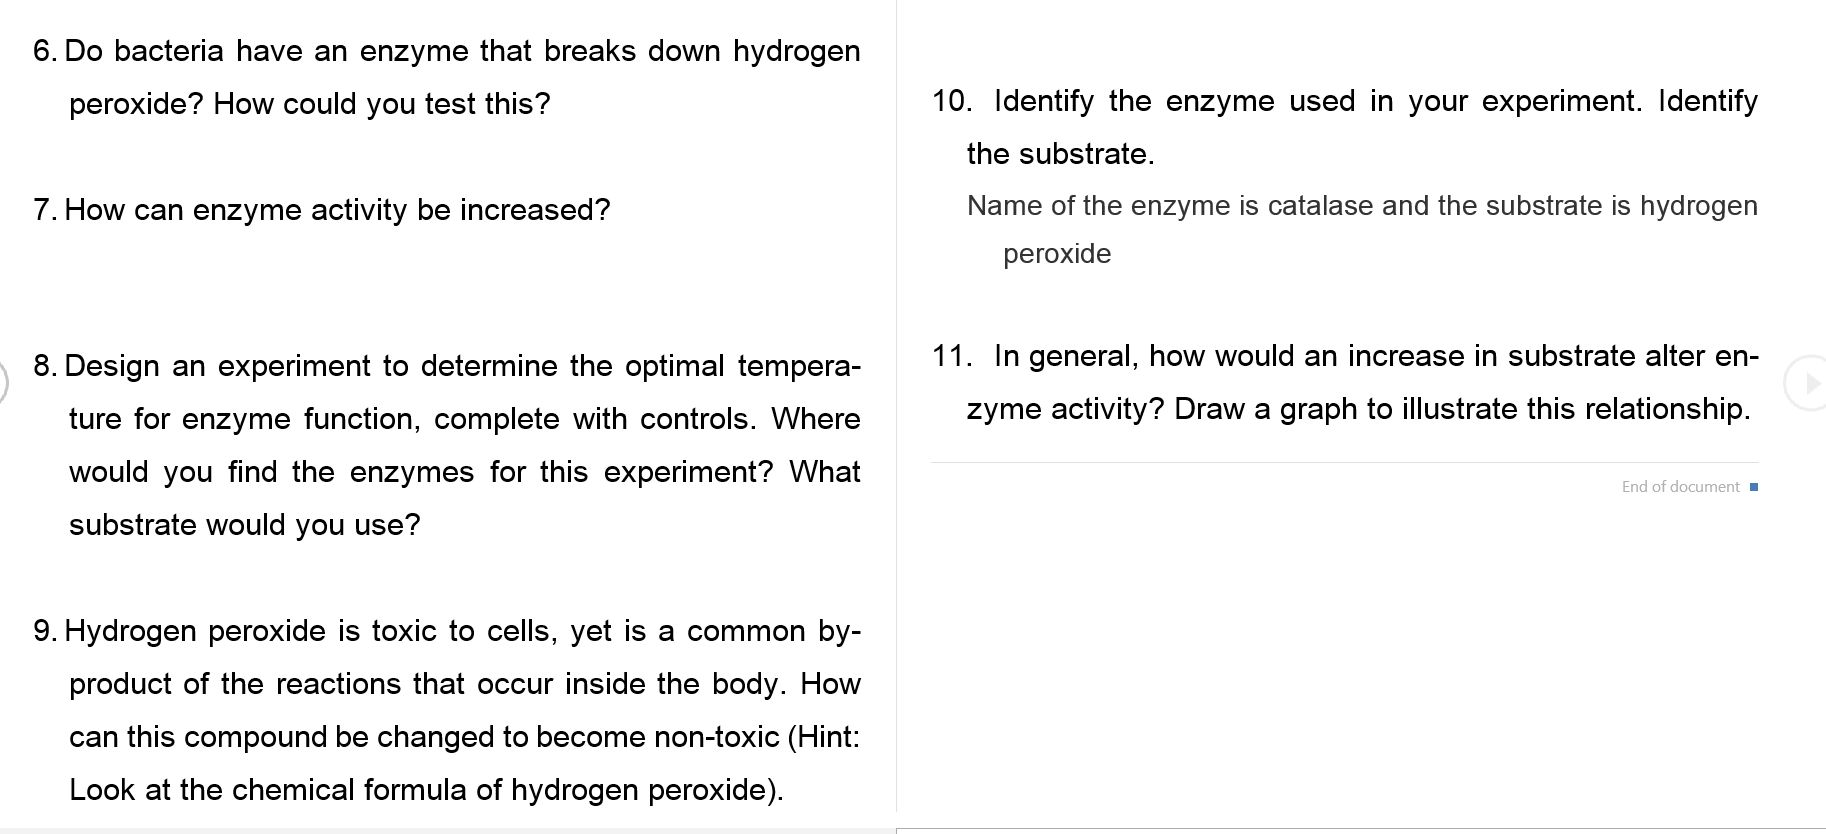 effect of temperature on hydrogen peroxide essay Hydrogen peroxide is the  are influenced by the surrounding temperature temperature has an effect on both the  how does temperature affect catalase enzyme .